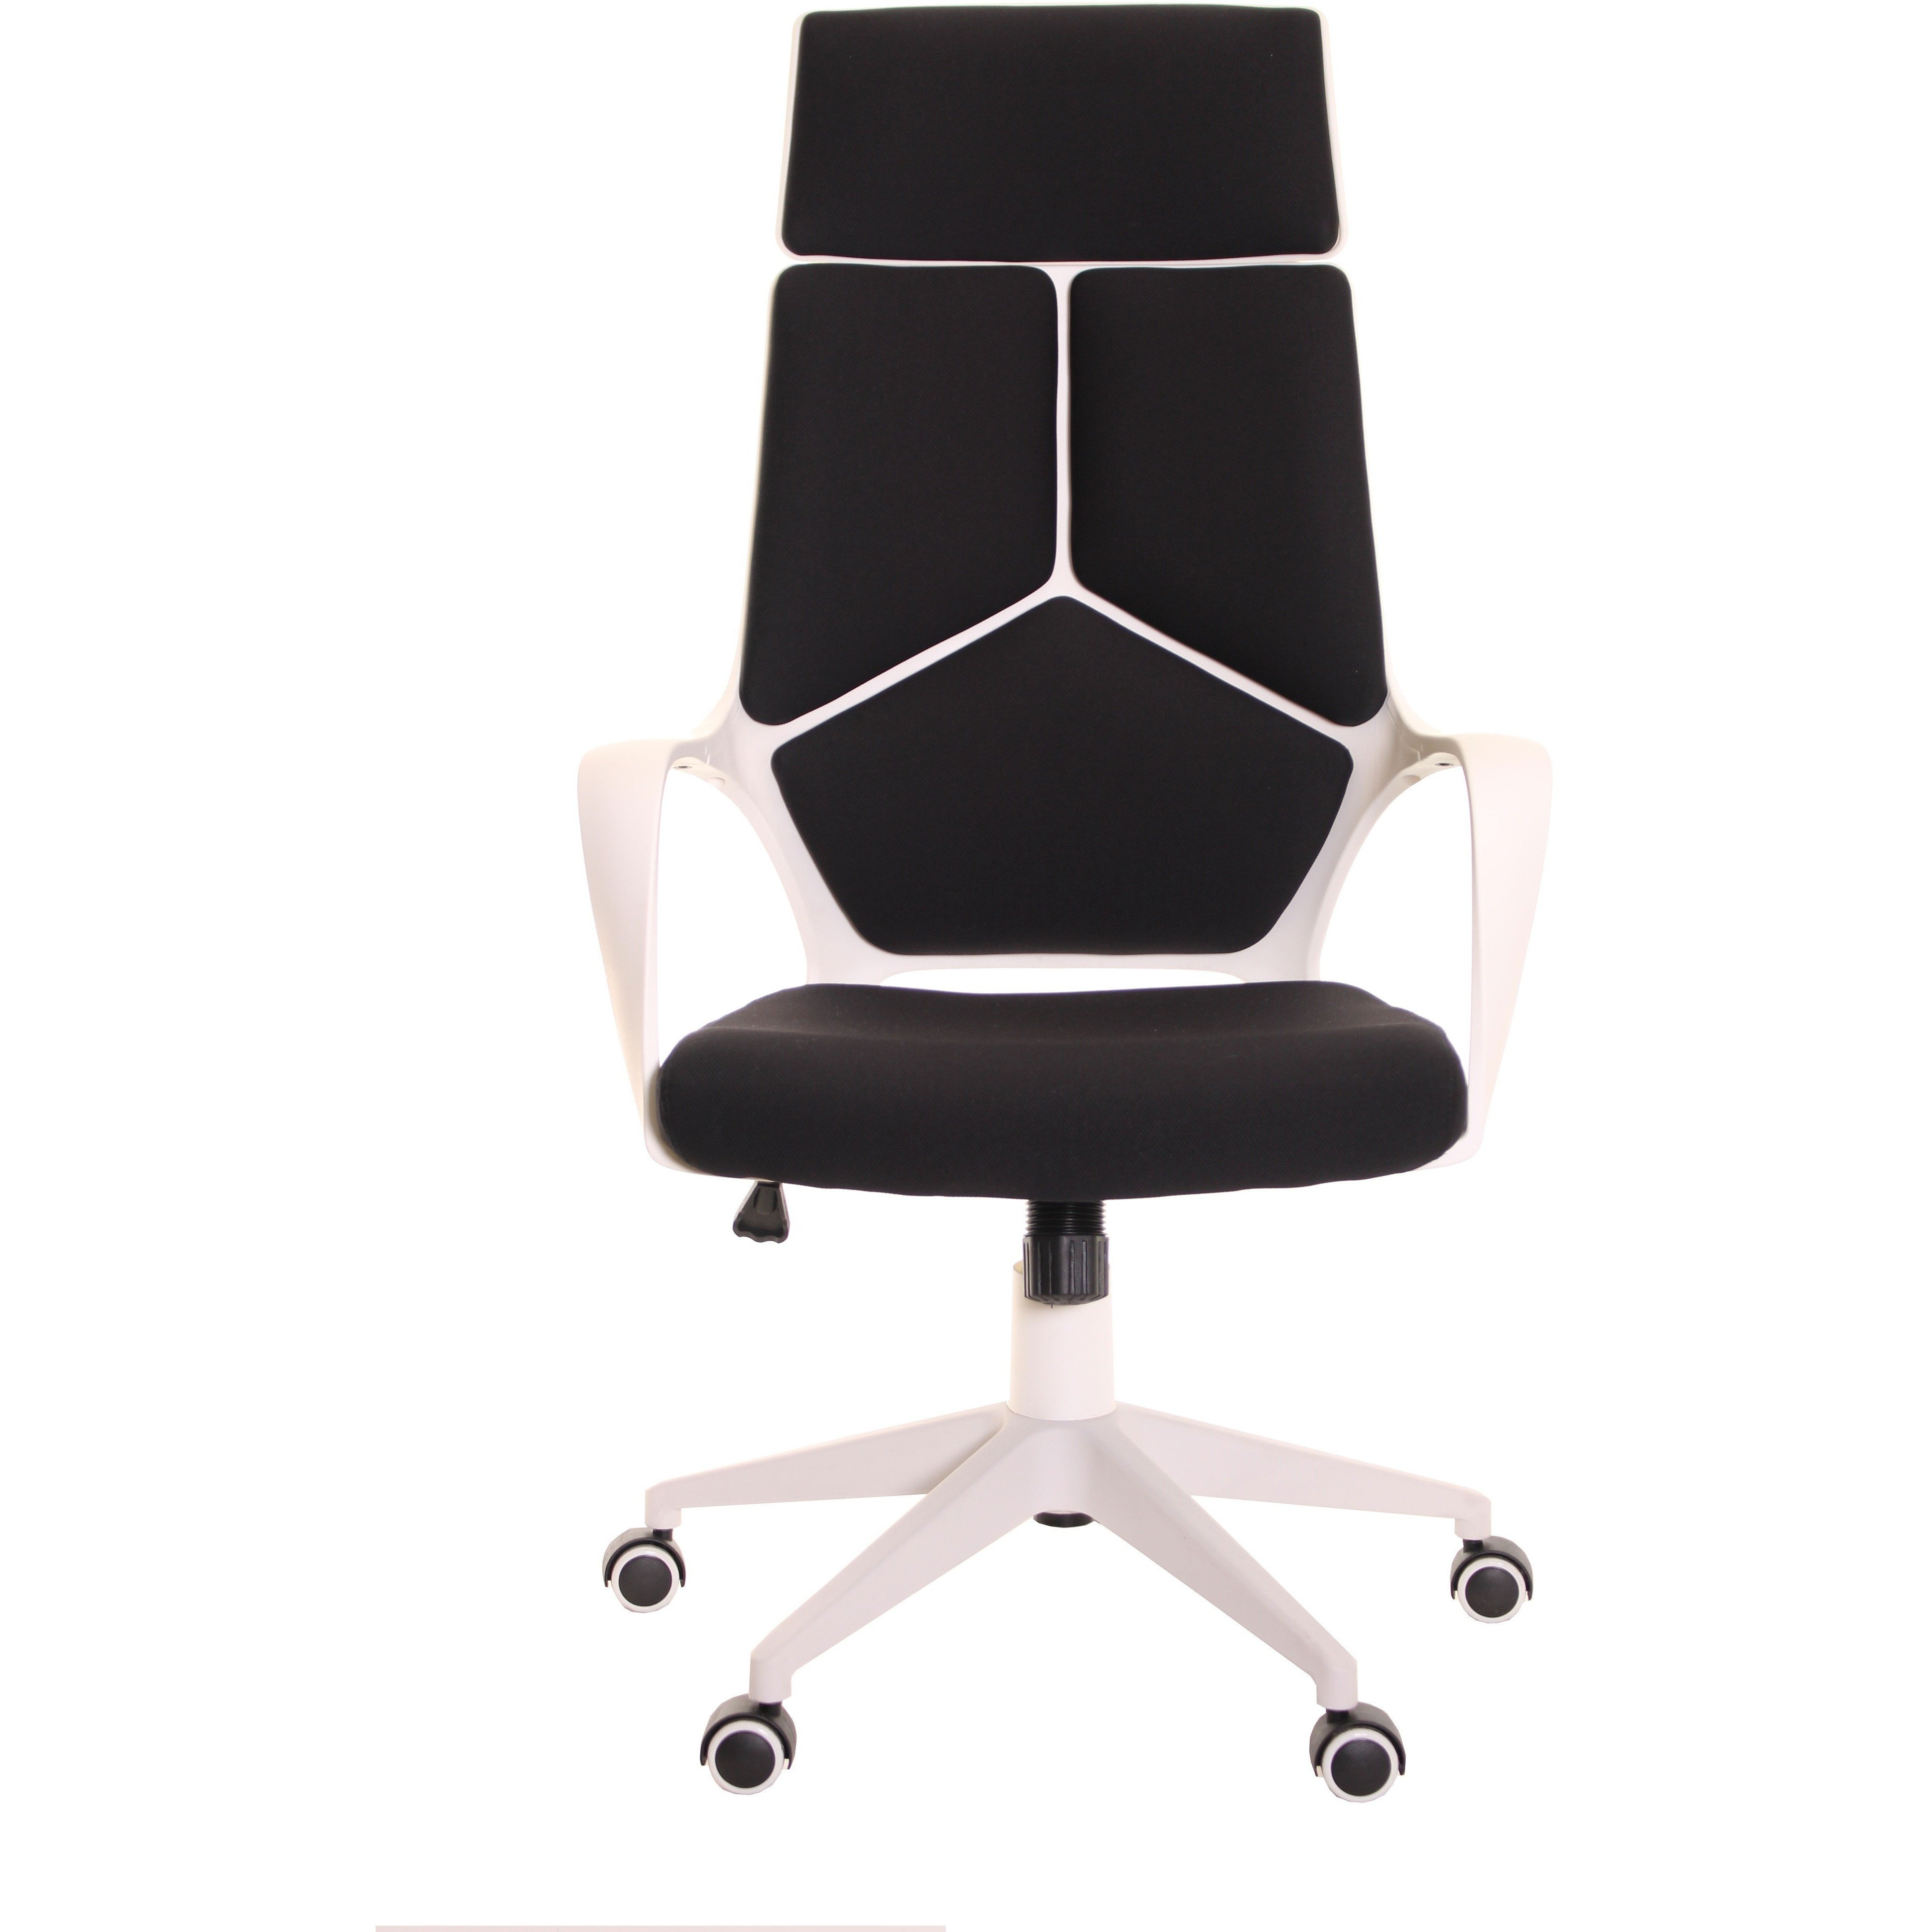 ergonomic office chairs modern ergonomic office chair black white by timeoffice DLHPBND